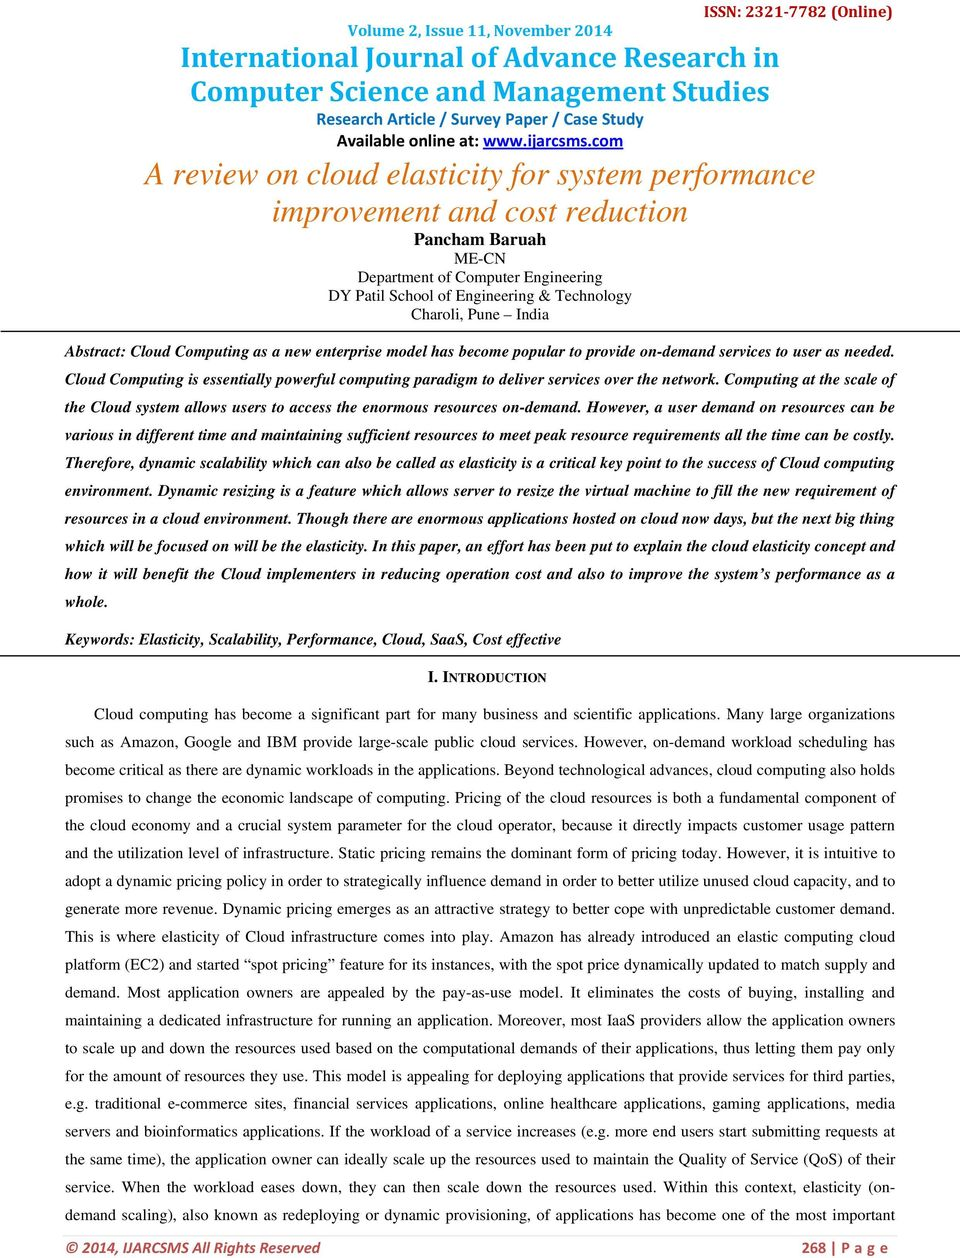 com A review on cloud elasticity for system performance improvement and cost reduction Pancham Baruah ME-CN Department of Computer Engineering DY Patil School of Engineering & Technology Charoli,